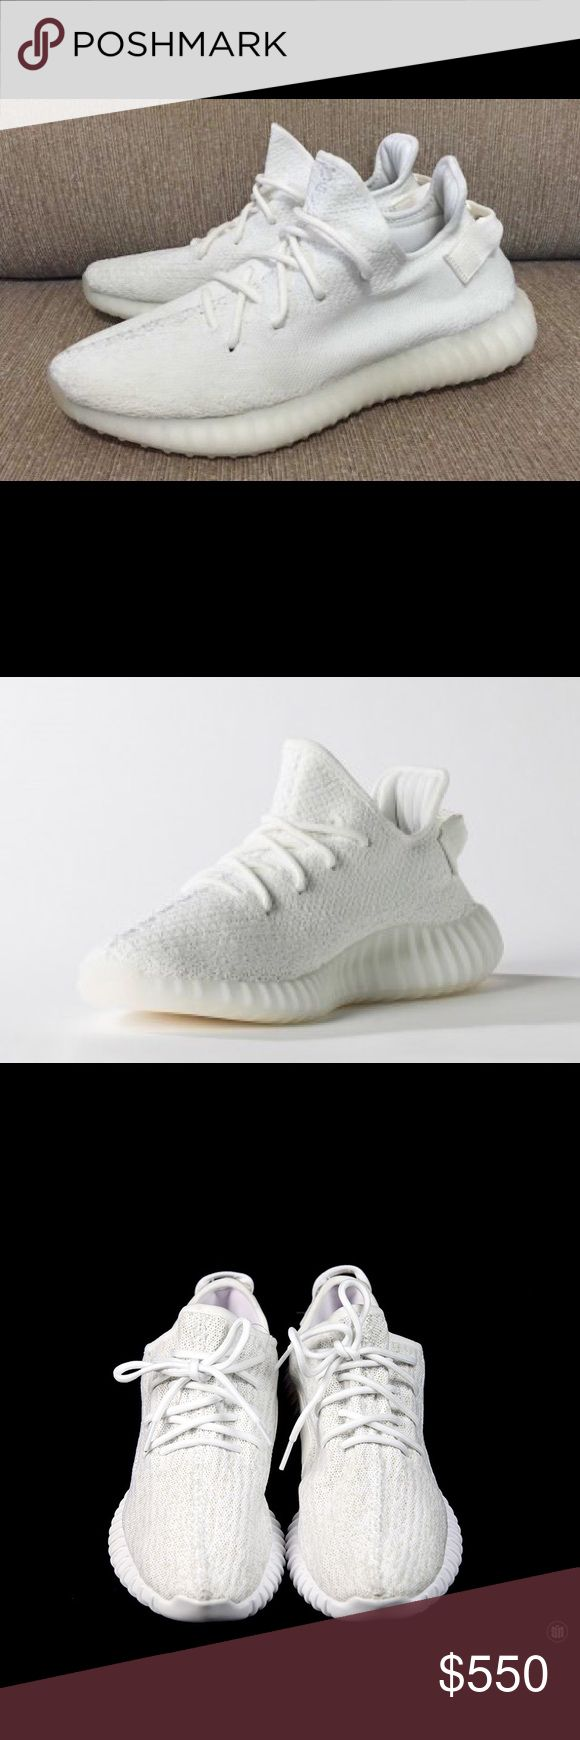 Yeezy Boost 350 v2 All White Size 13 These shoes are brand New in the box straight from Footlocker. They are the brand new Yeezy release and will sell out immediately. Never worn and has all tags. More photos to come! Adidas Shoes Sneakers